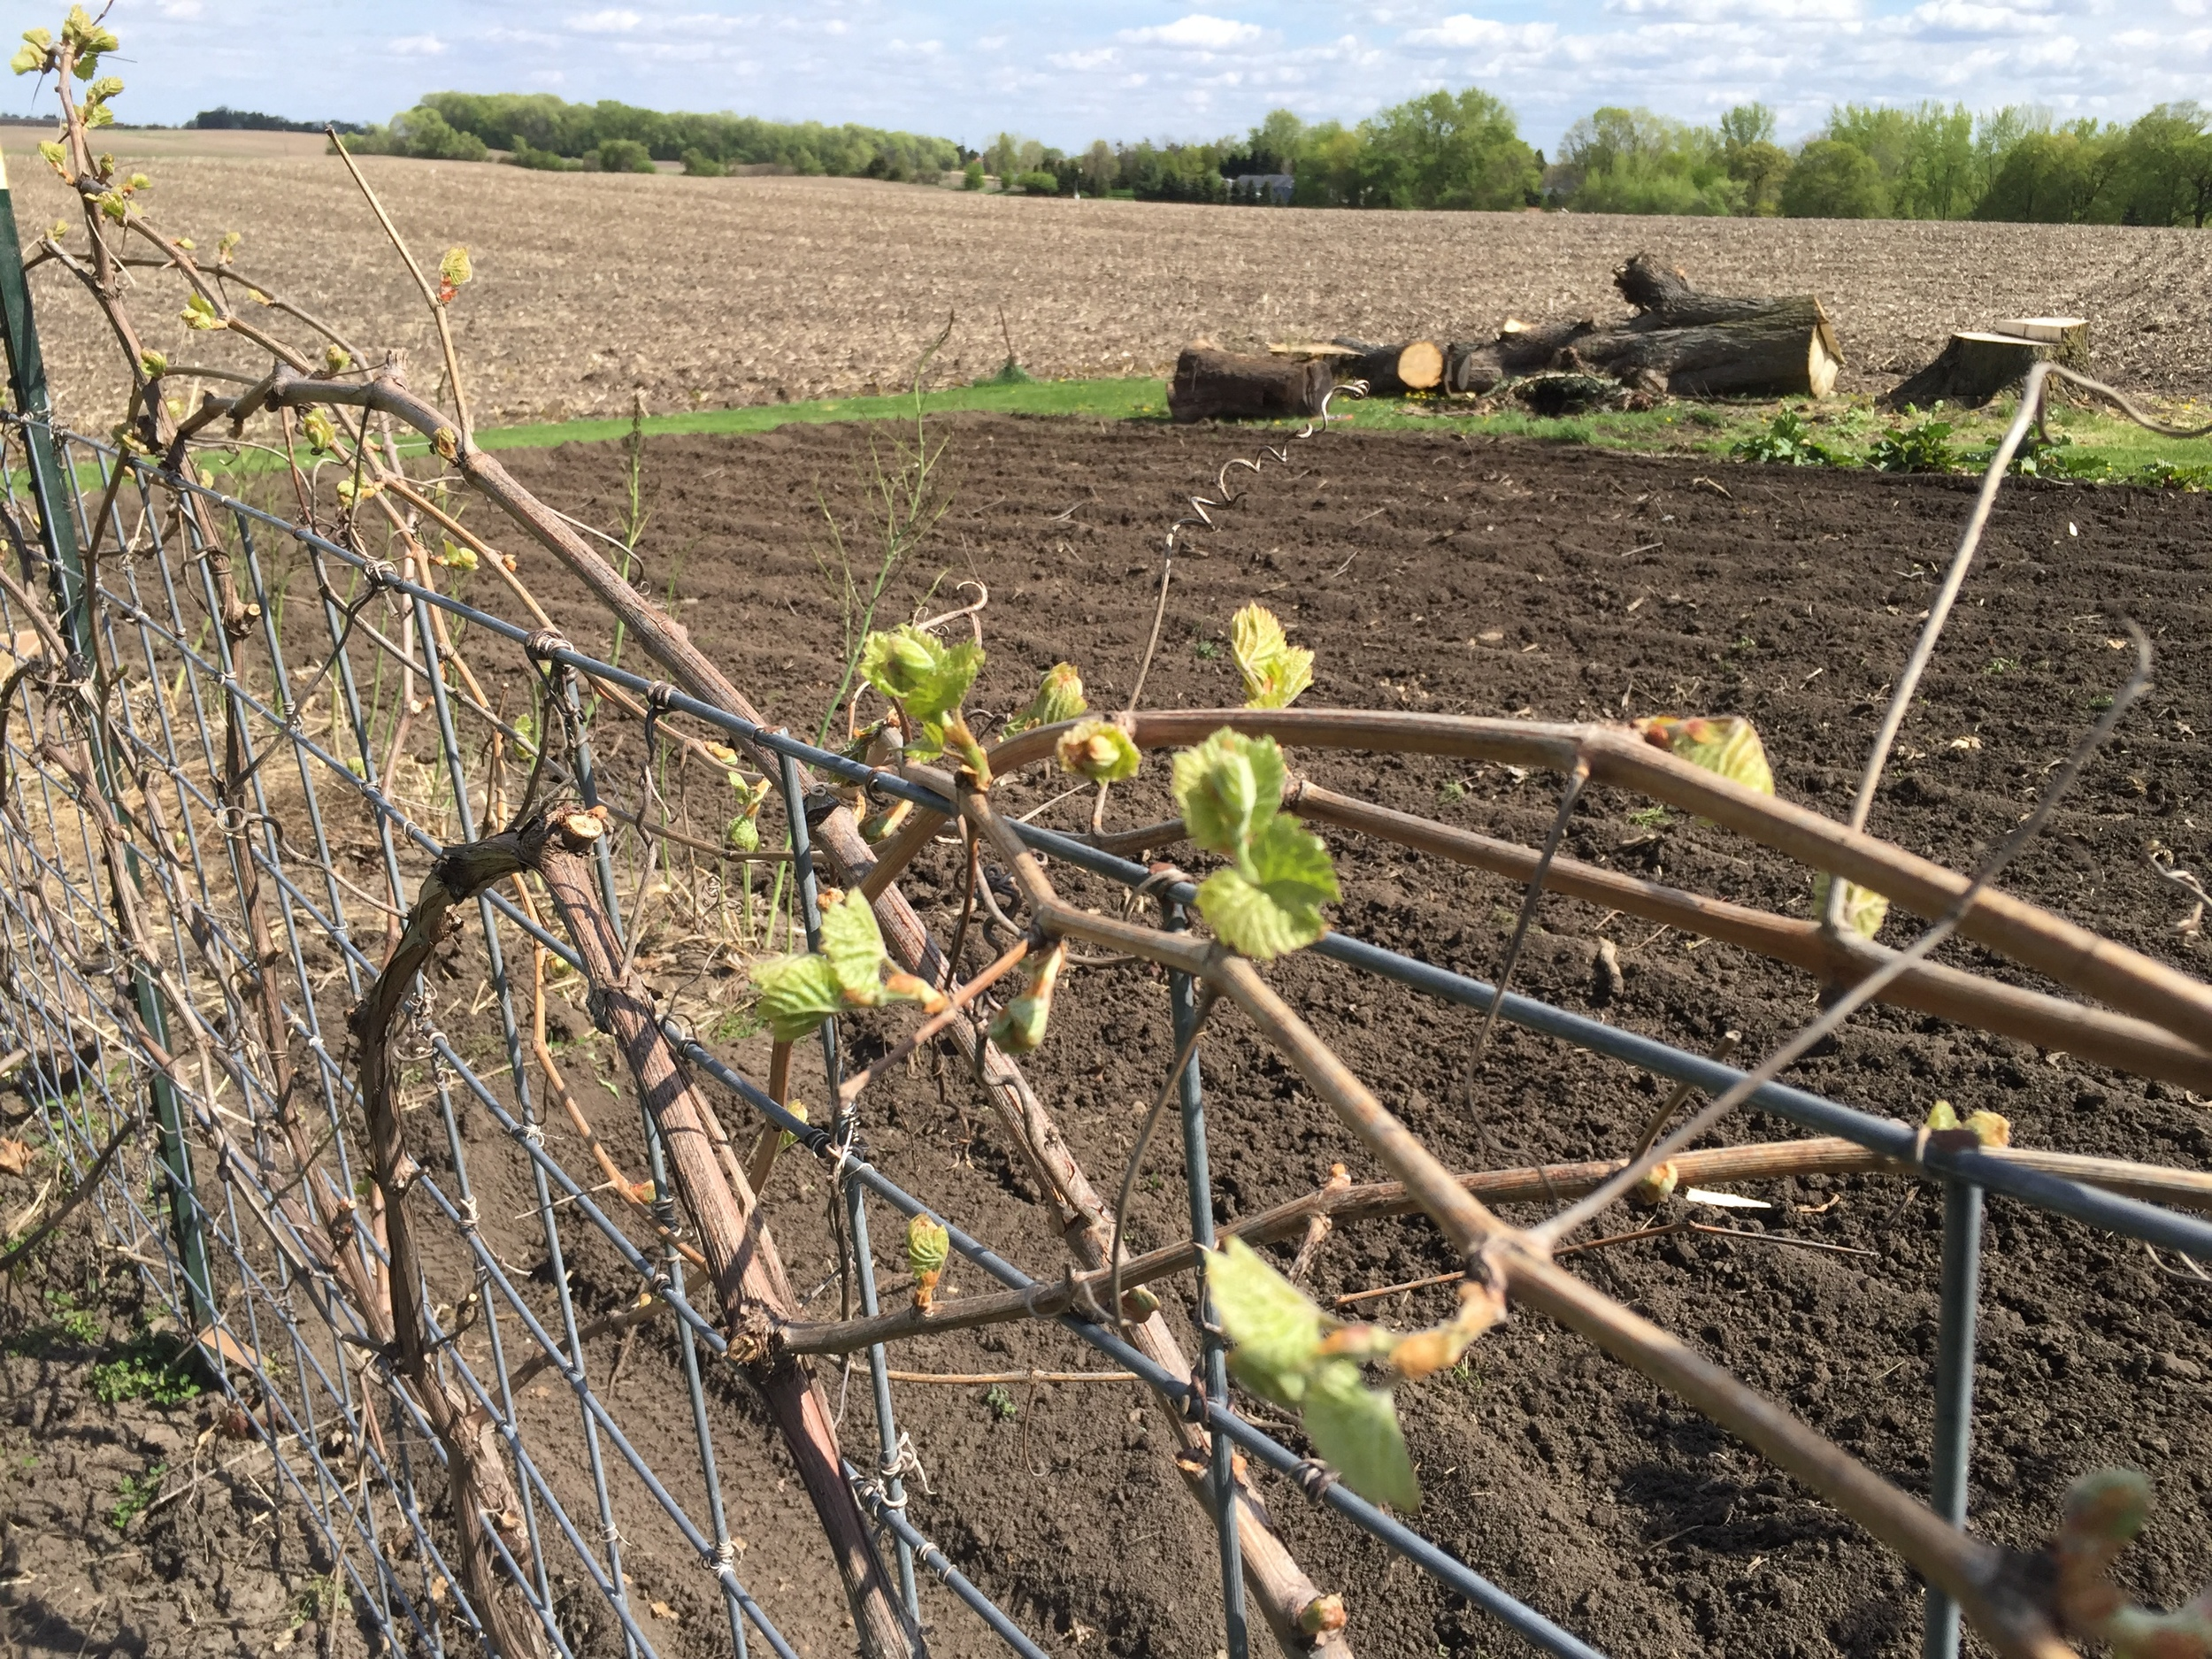 Grapes are budding and looking very healthy.